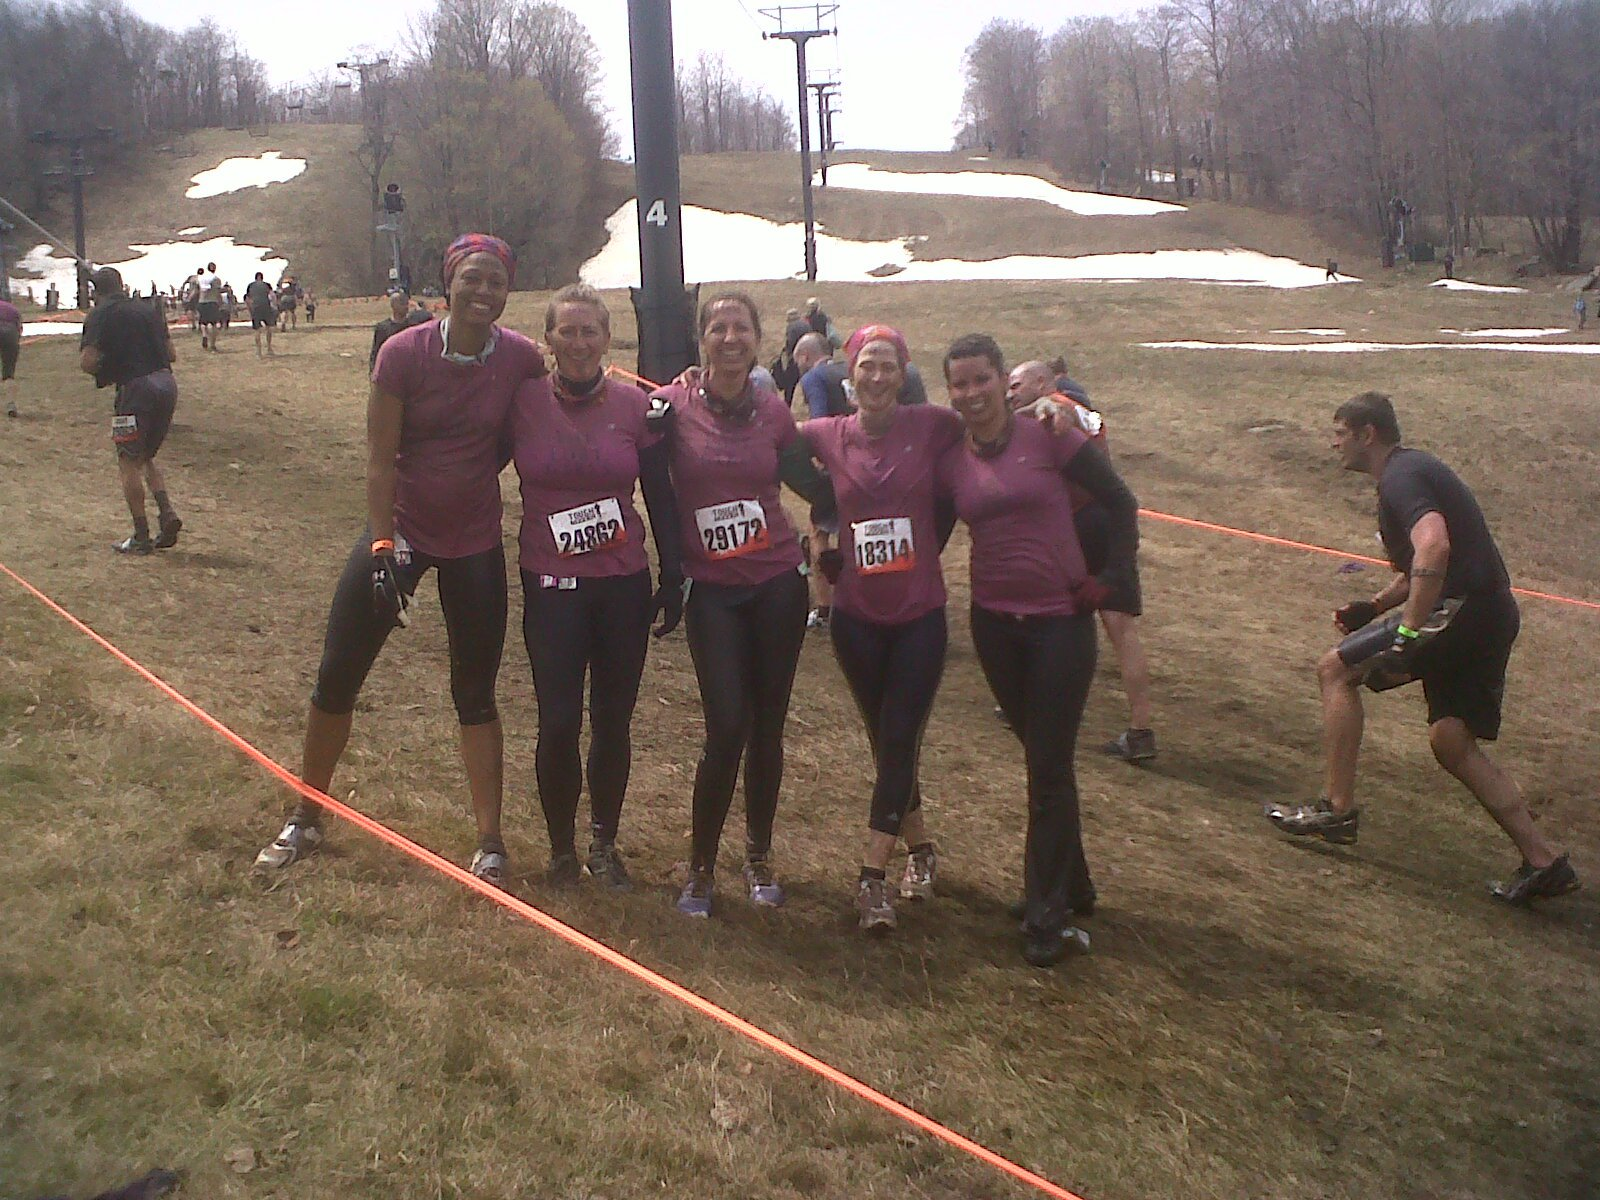 The Lost Girls Races: Tough Mudder Race Day